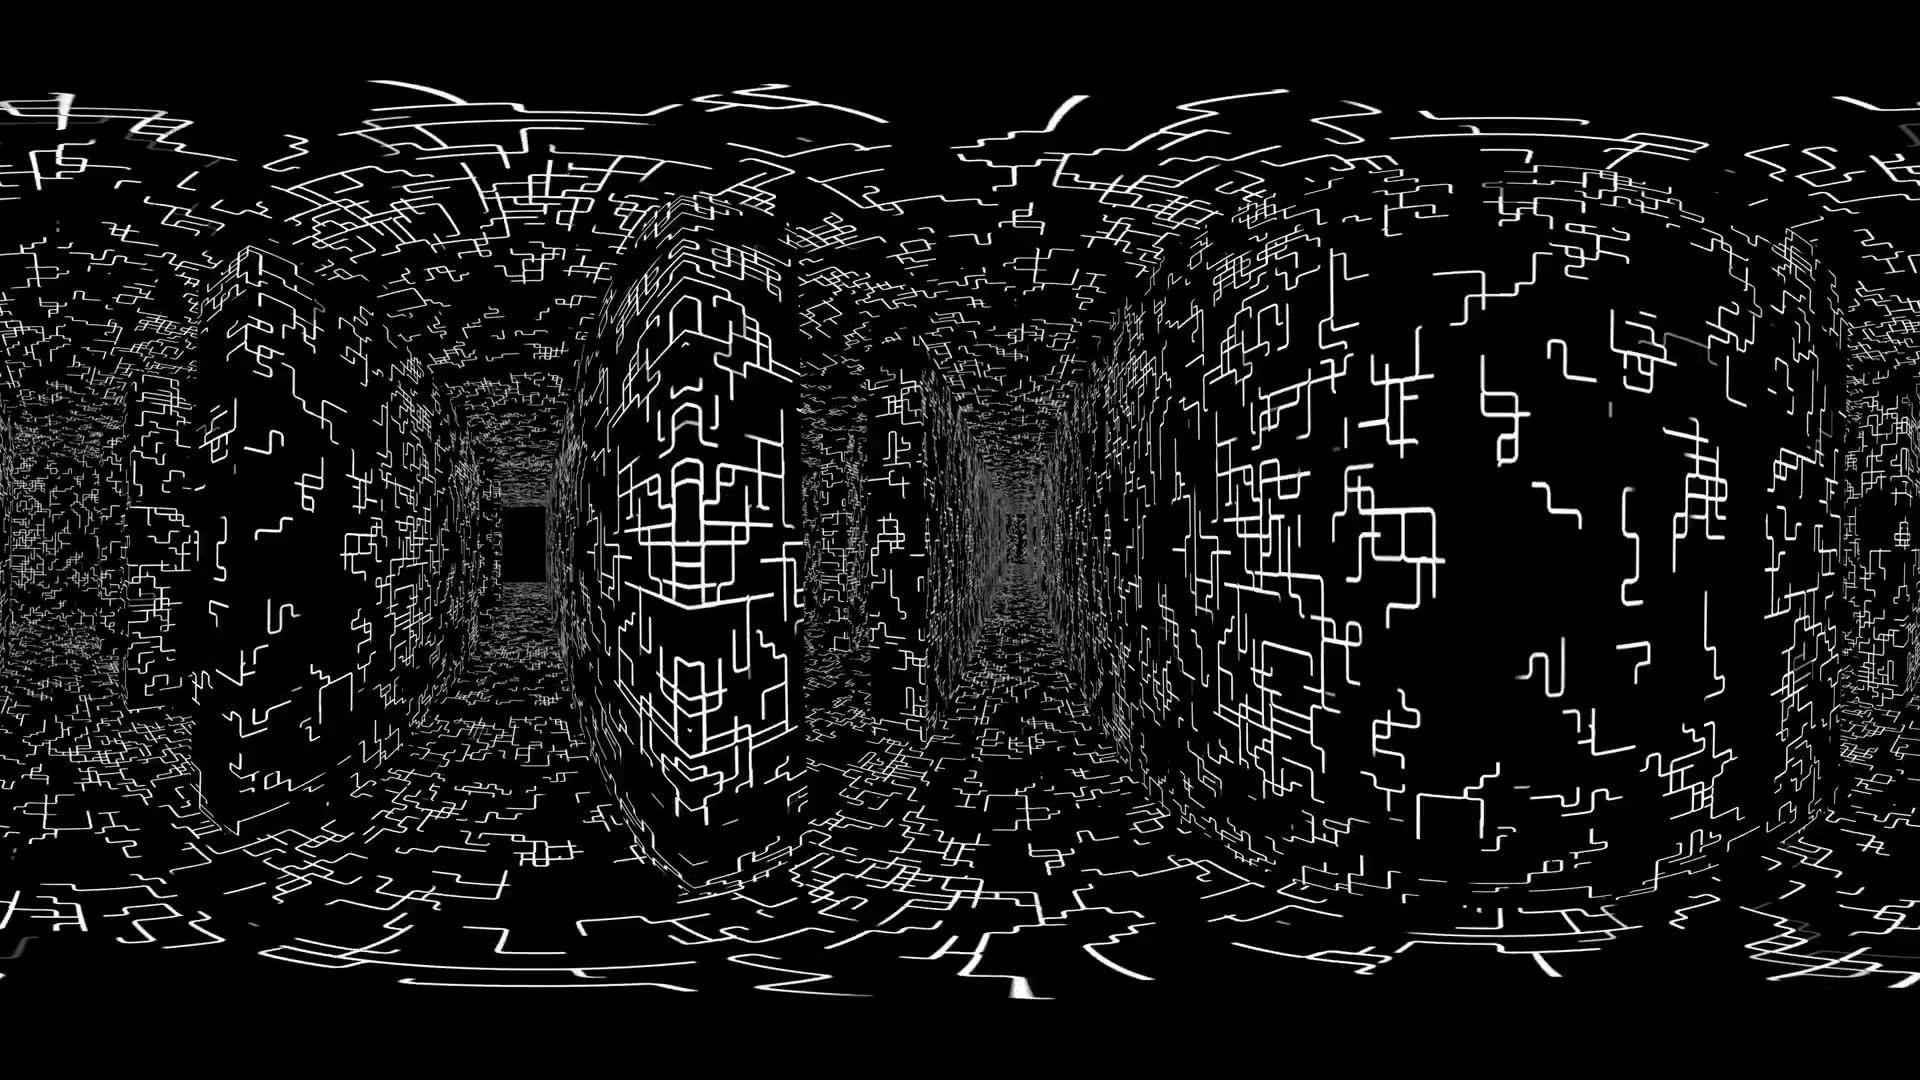 360 VR Maze 004: Virtual reality video inside a maze of grid lines (Loop). Designed to be used in Oculus Rift, Samsung Gear VR and other virtual reality displays.